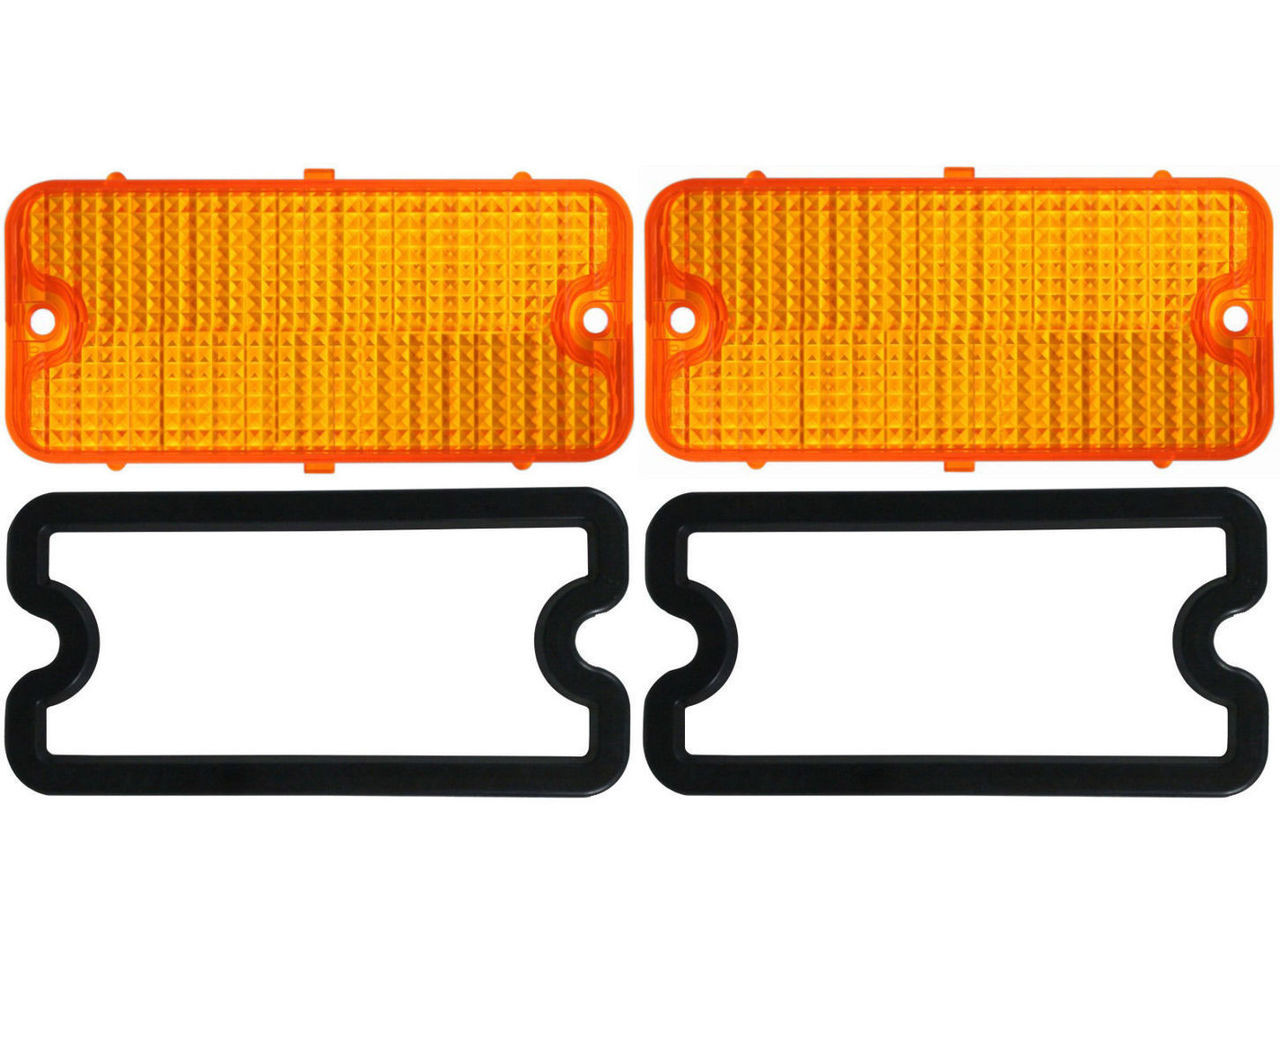 (2) Parking Light Lenses With Gaskets, Amber, Pair, Fits Chevy 1967-1968 Truck